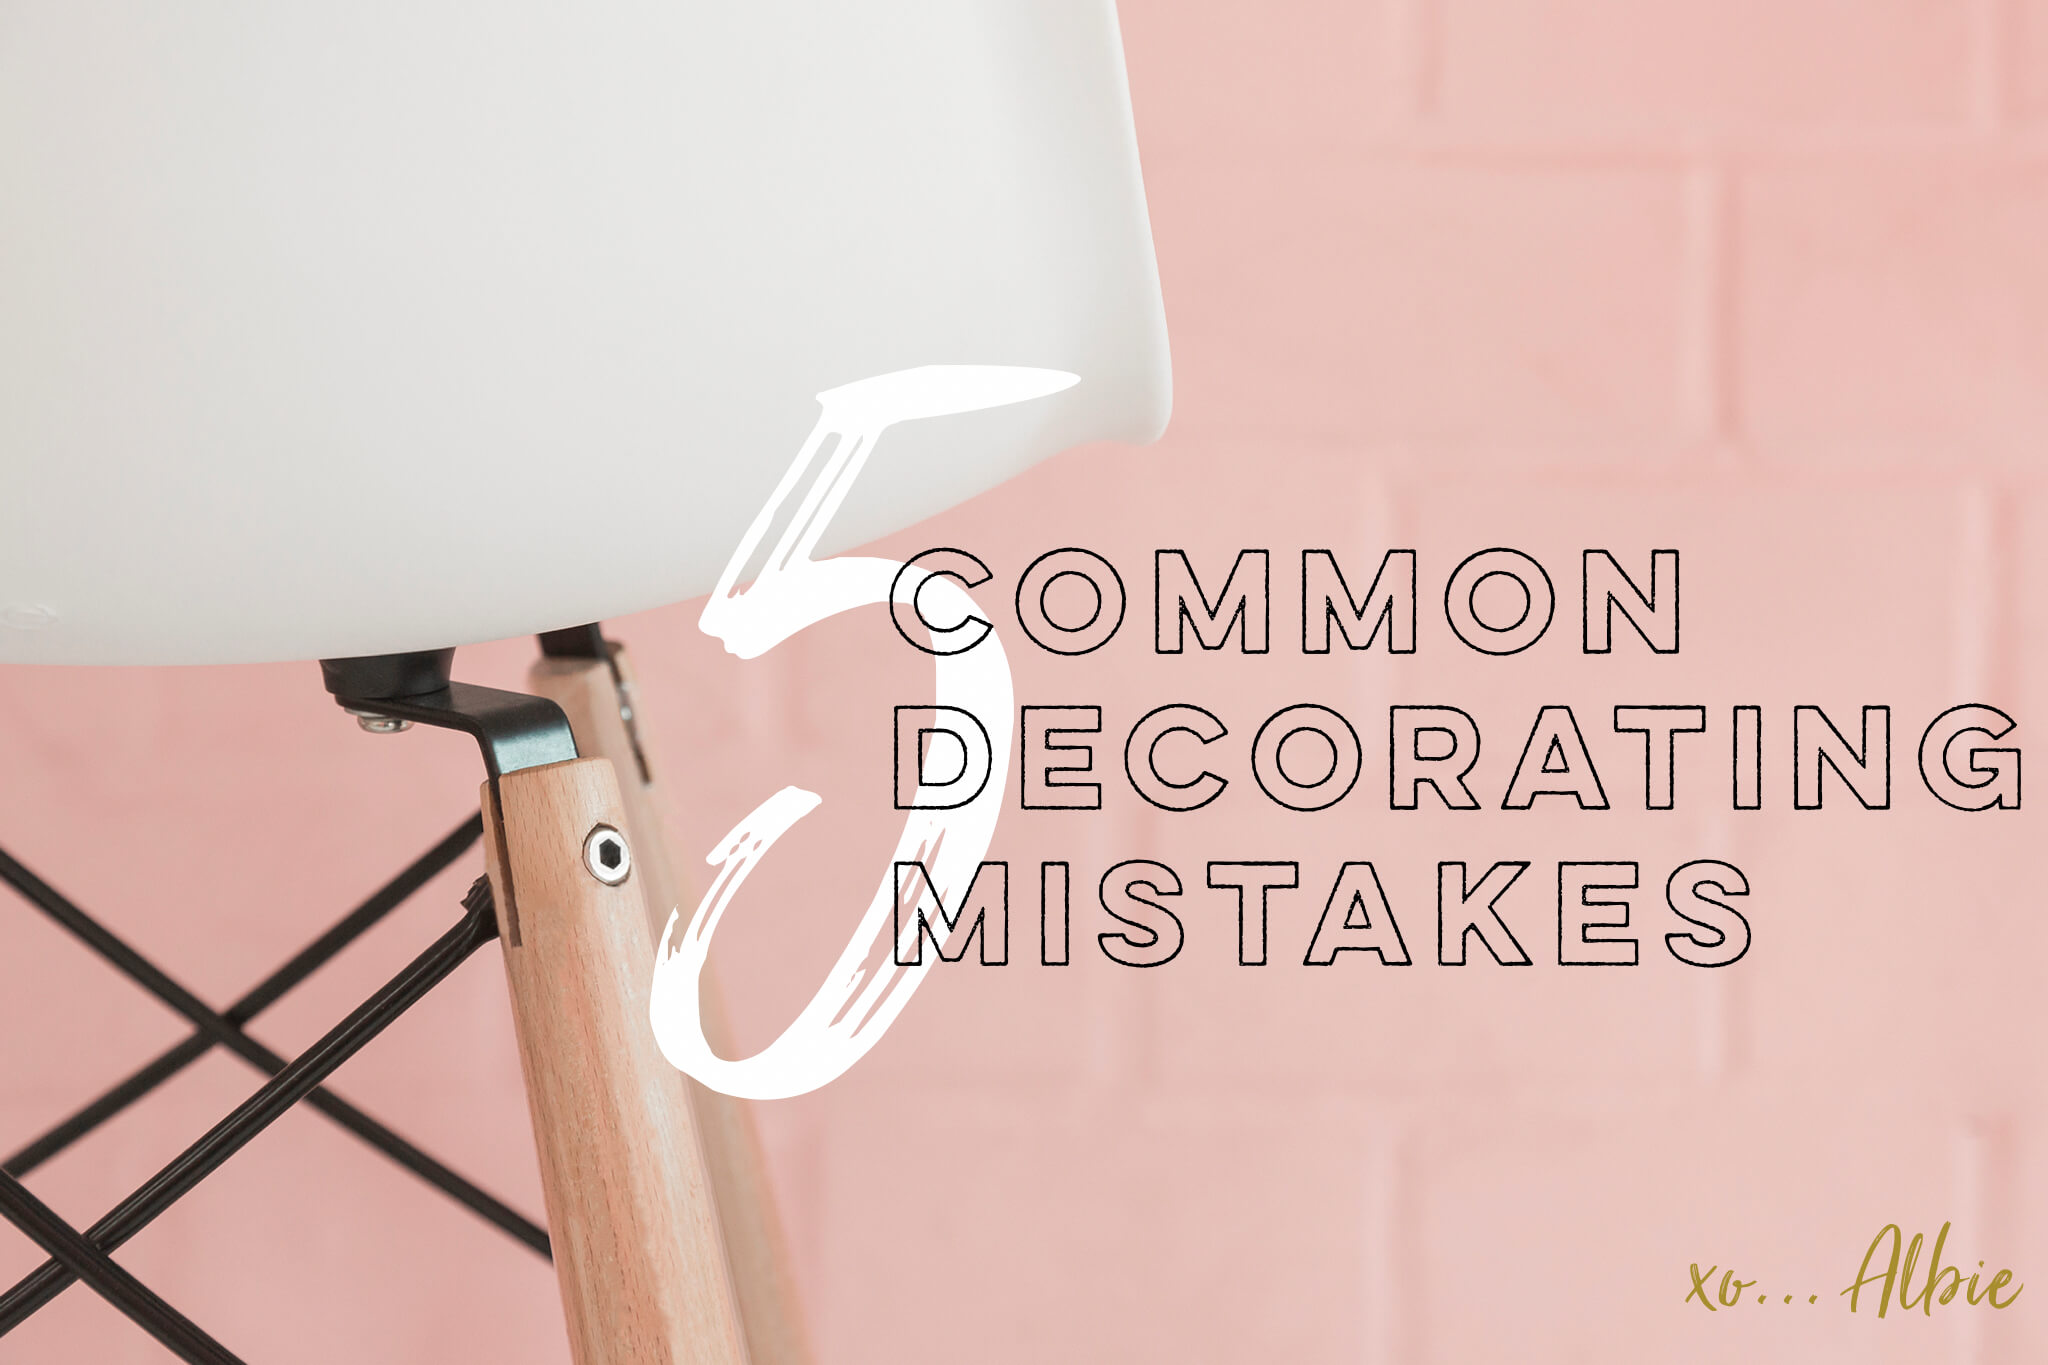 Albie Knows 5 Common Decorating Mistakes